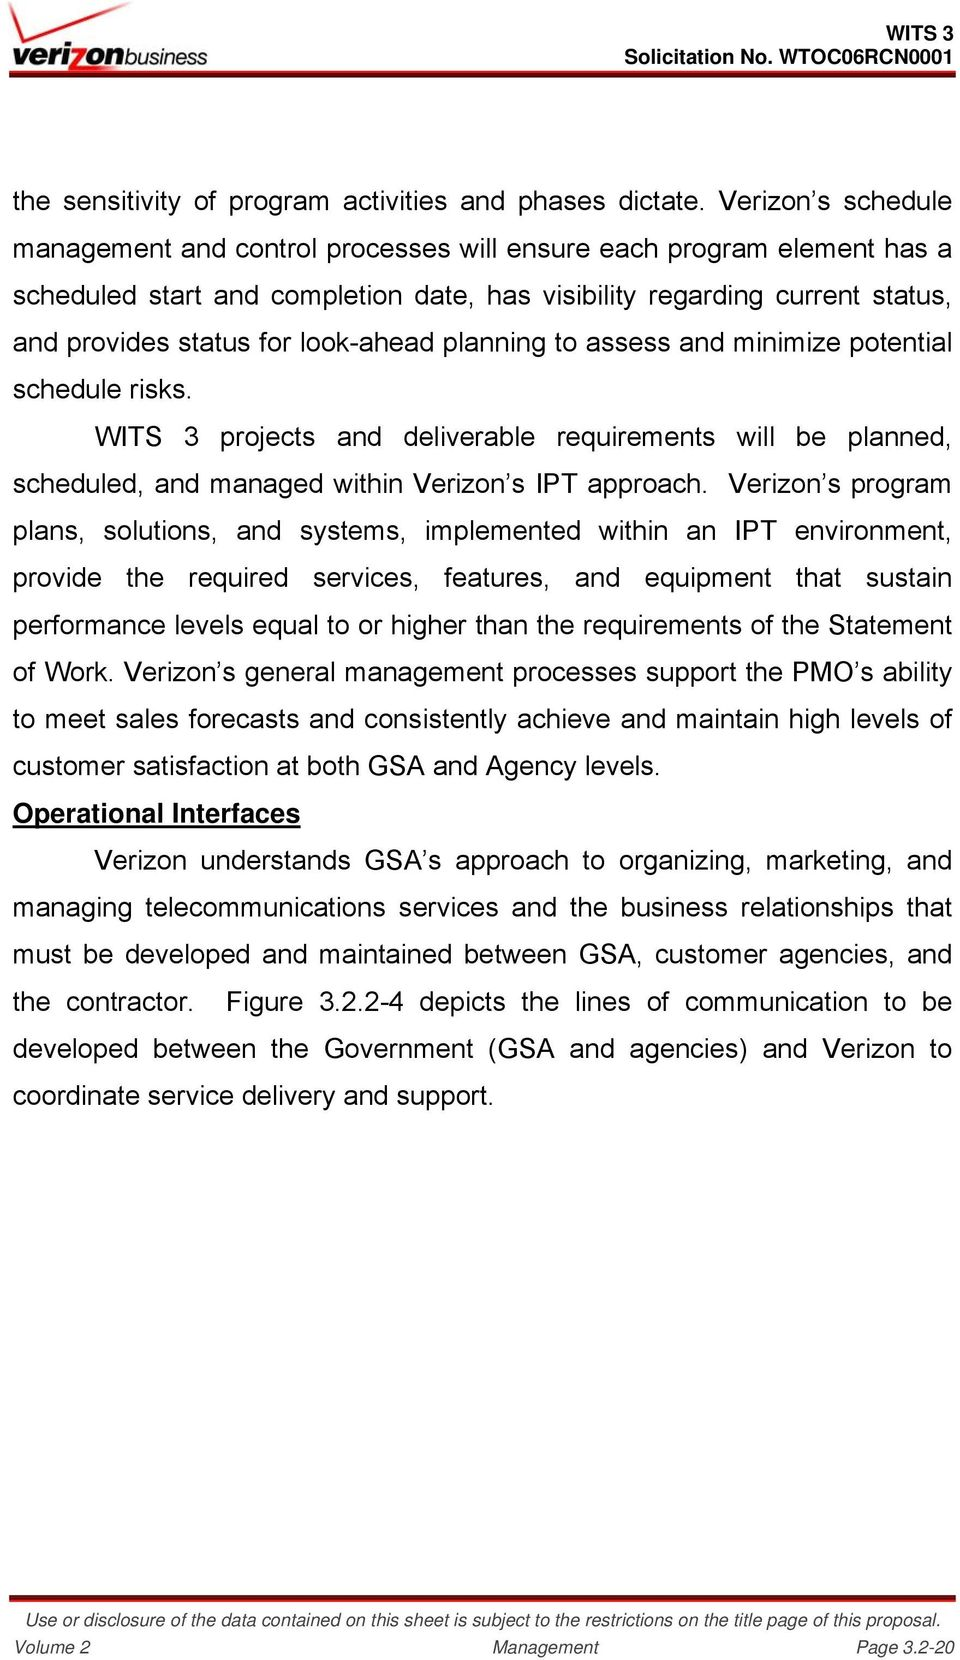 look-ahead planning to assess and minimize potential schedule risks. WITS 3 projects and deliverable requirements will be planned, scheduled, and managed within Verizon s IPT approach.